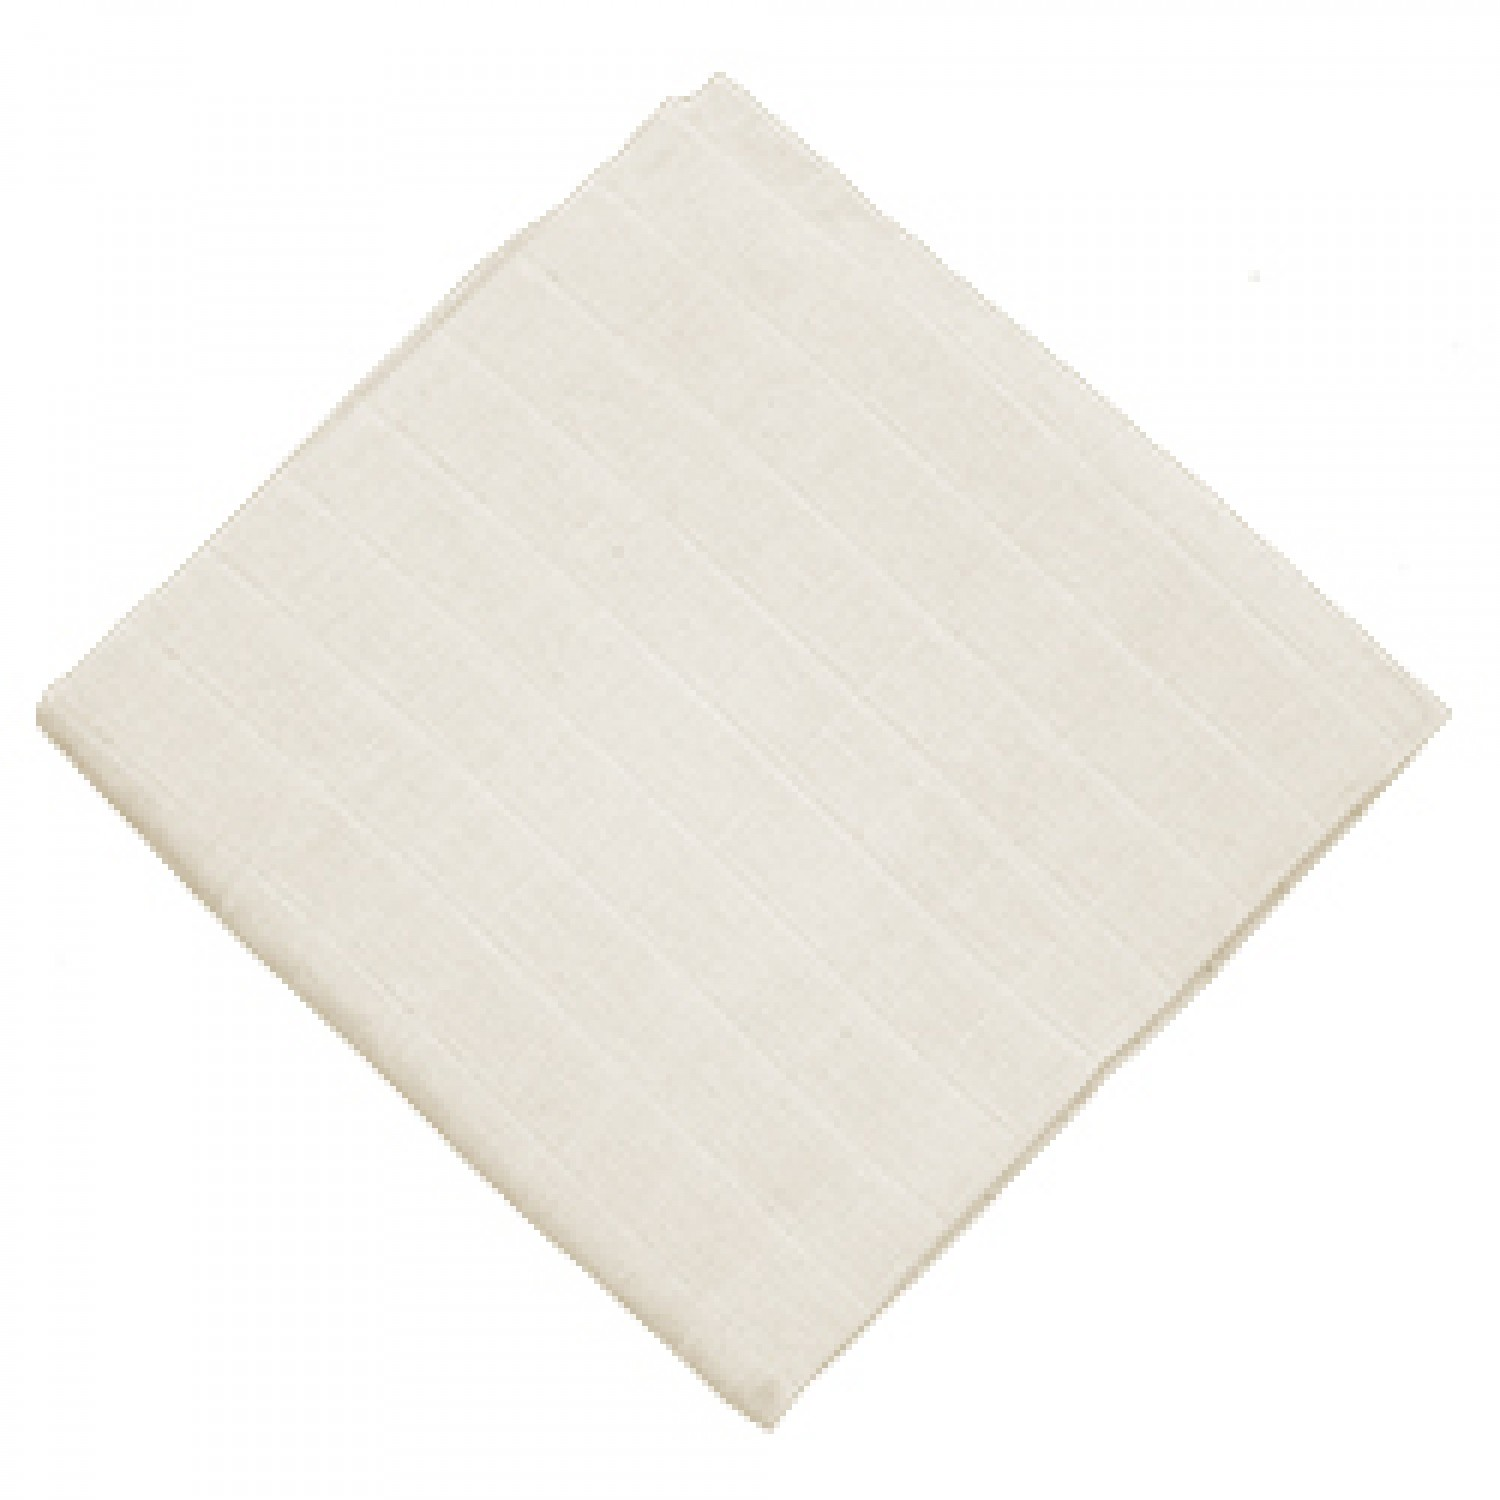 Muslin Squares of Organic Cotton, 10-Pack | Reiff